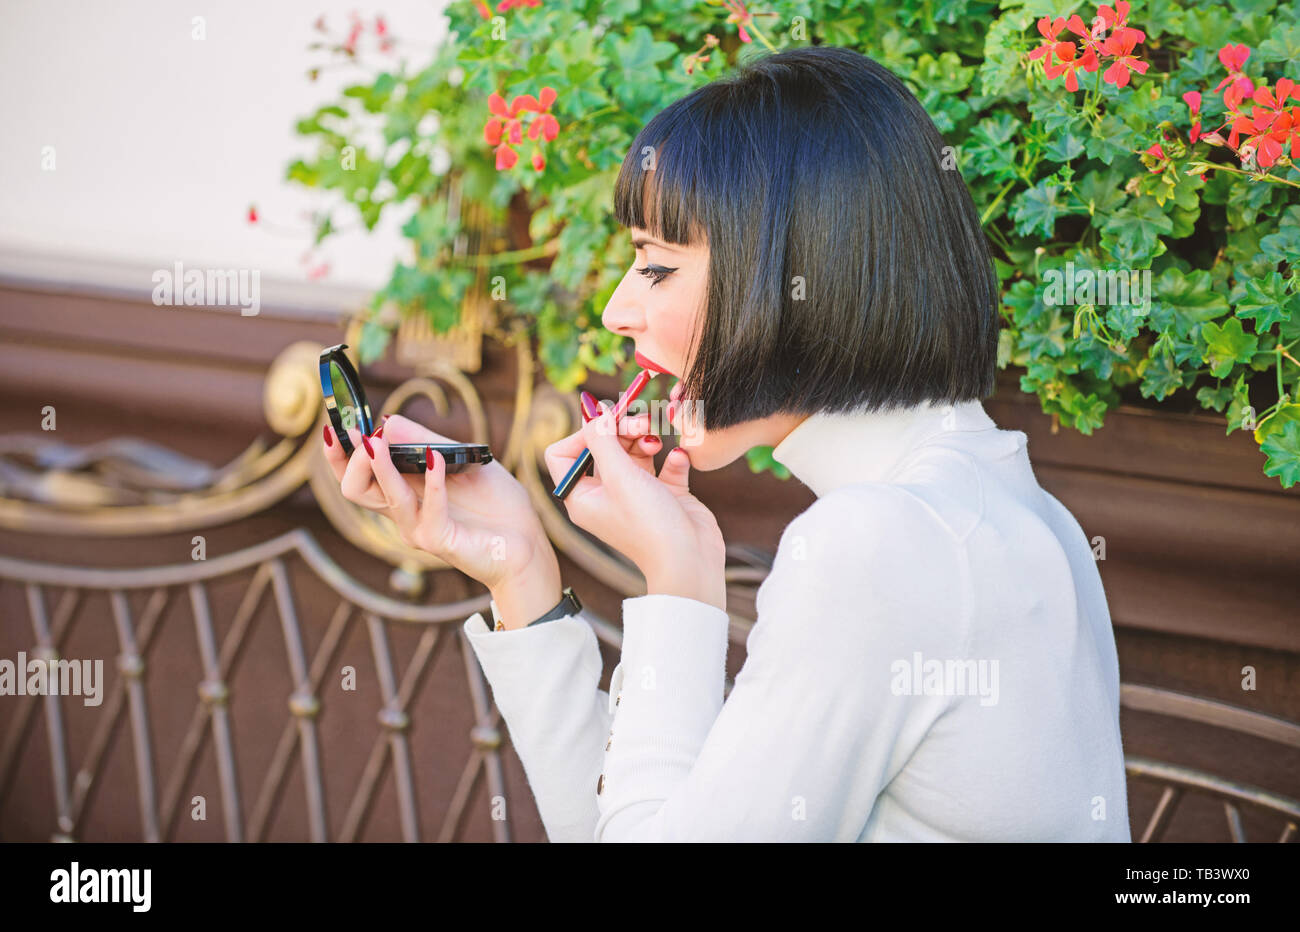 Girlish secrets concept. Woman making makeup with pocket mirror. Check if everything is right before date. Makeup concept. Girl brunette with lipstick looking in mirror check her makeup appearance. - Stock Image